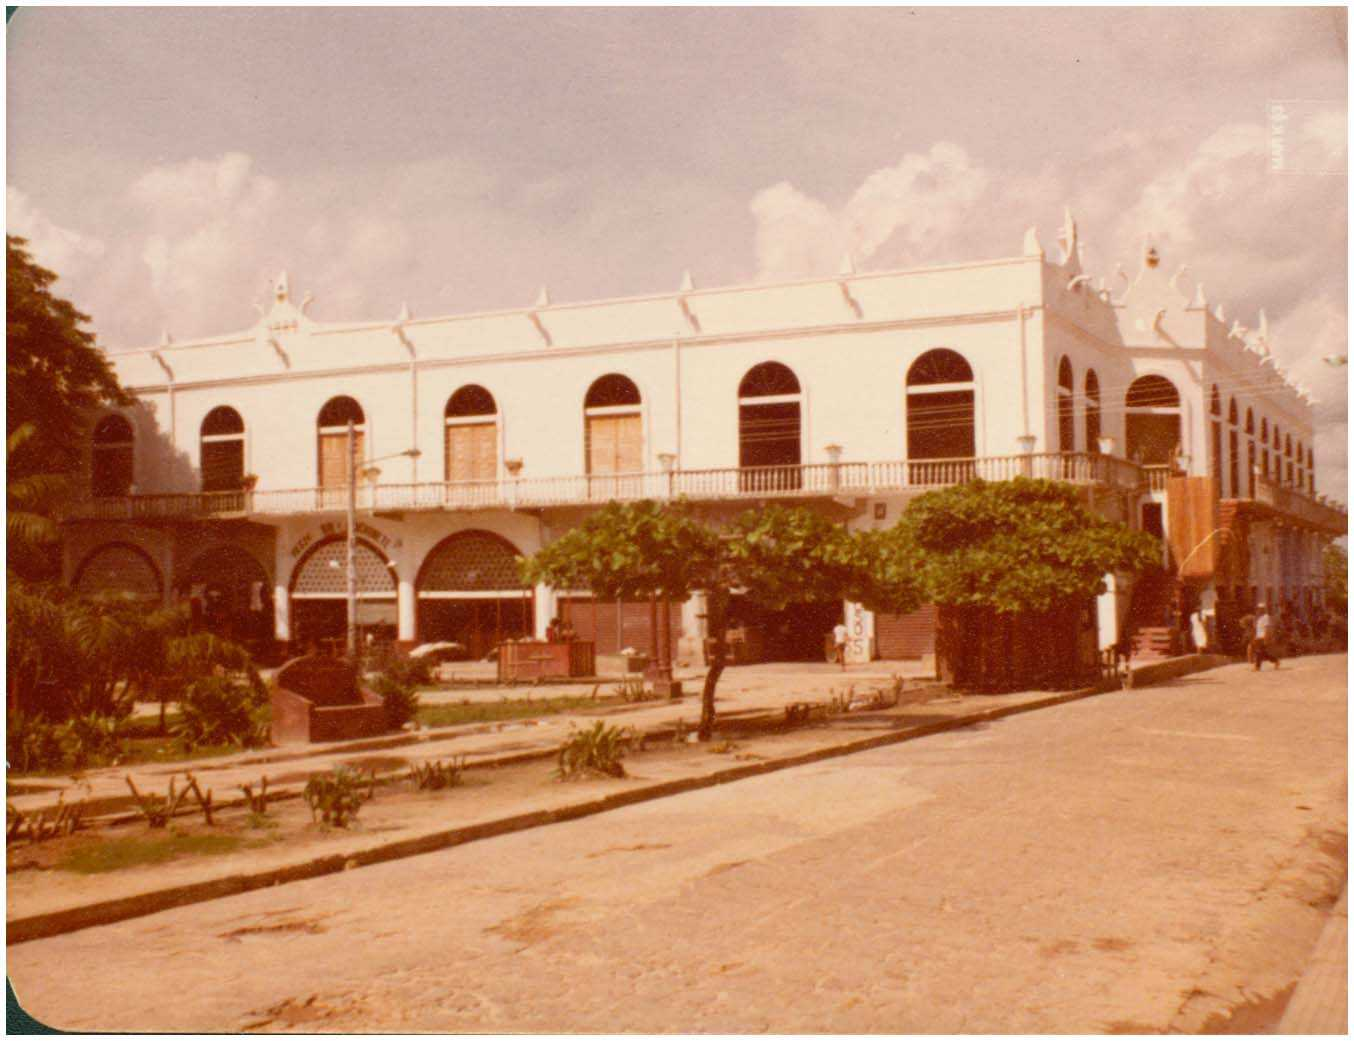 Mercado Municipal : Tefé, AM - 1983 / Foto : IBGE